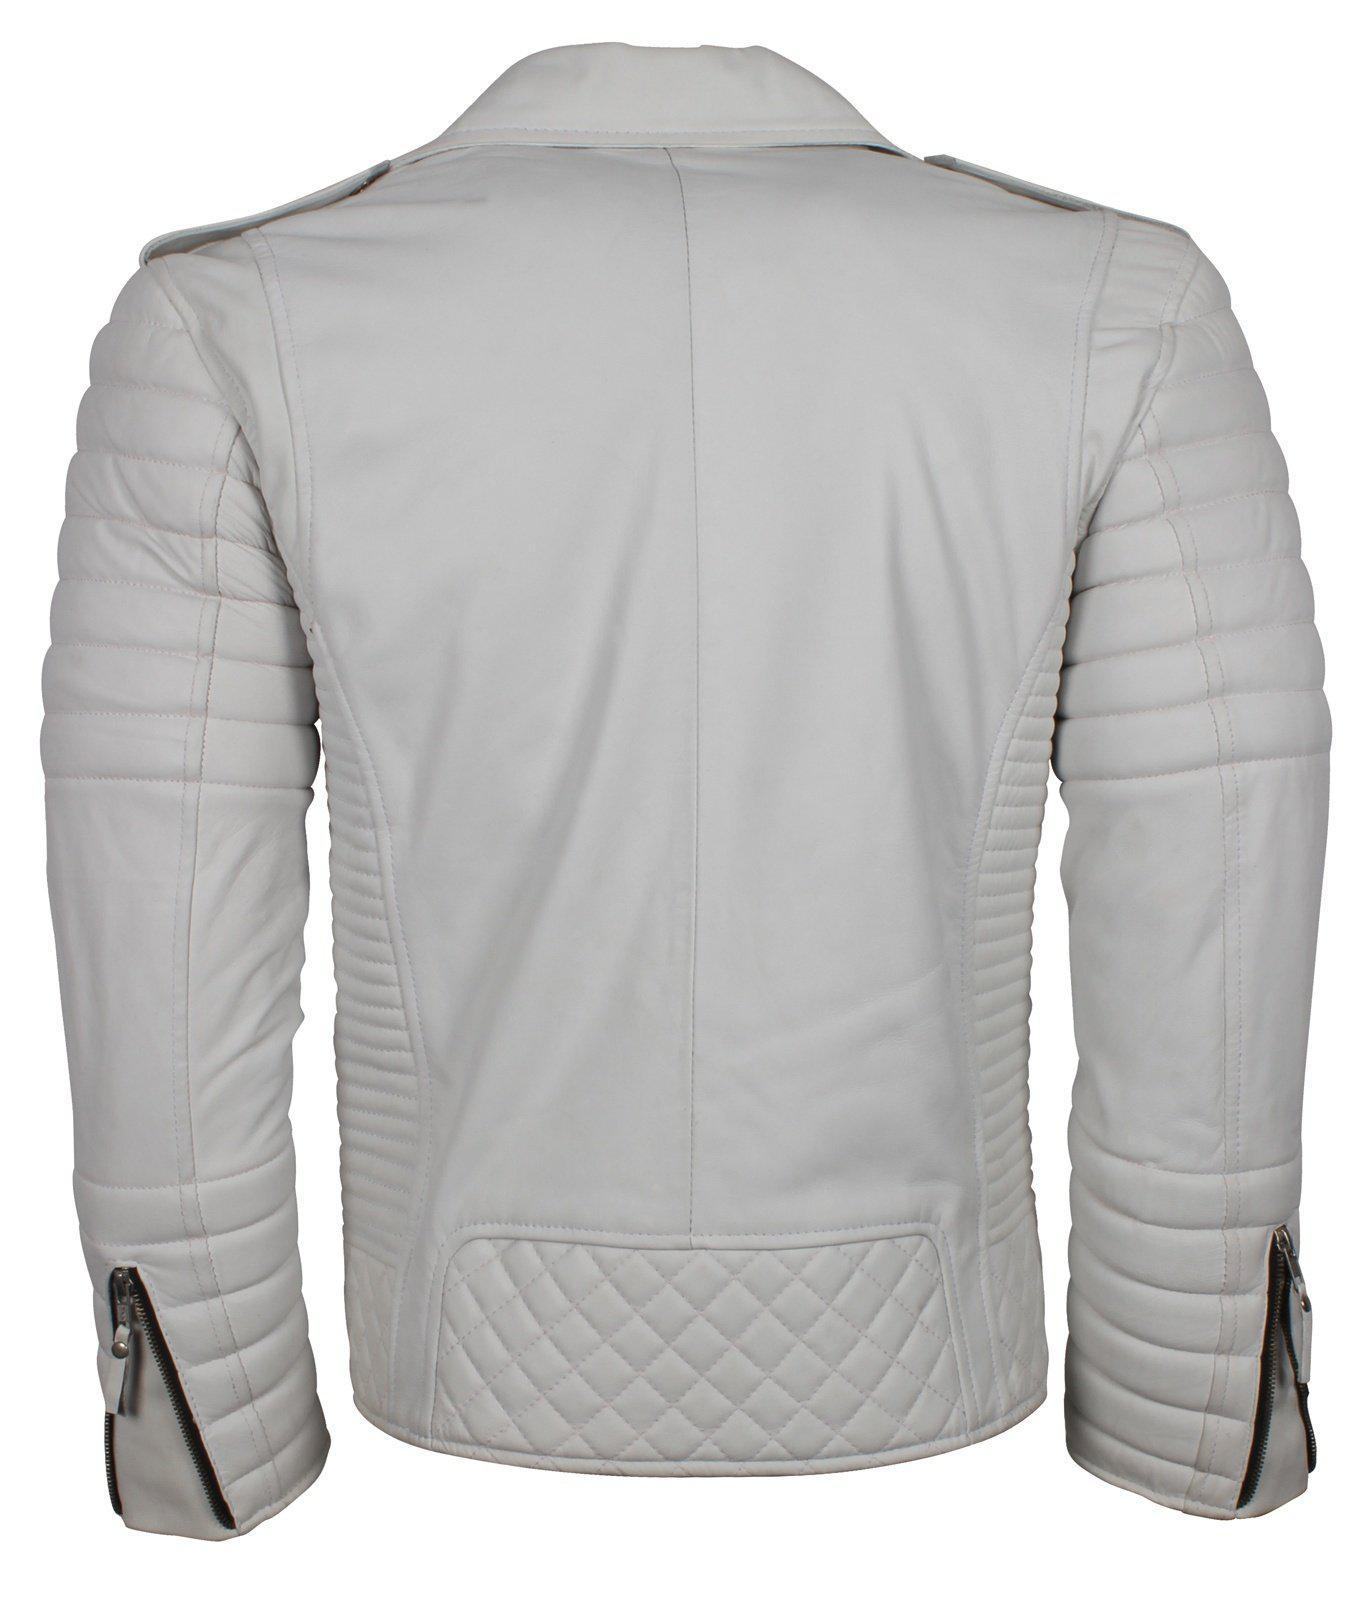 White Leather Jacket for Bikers